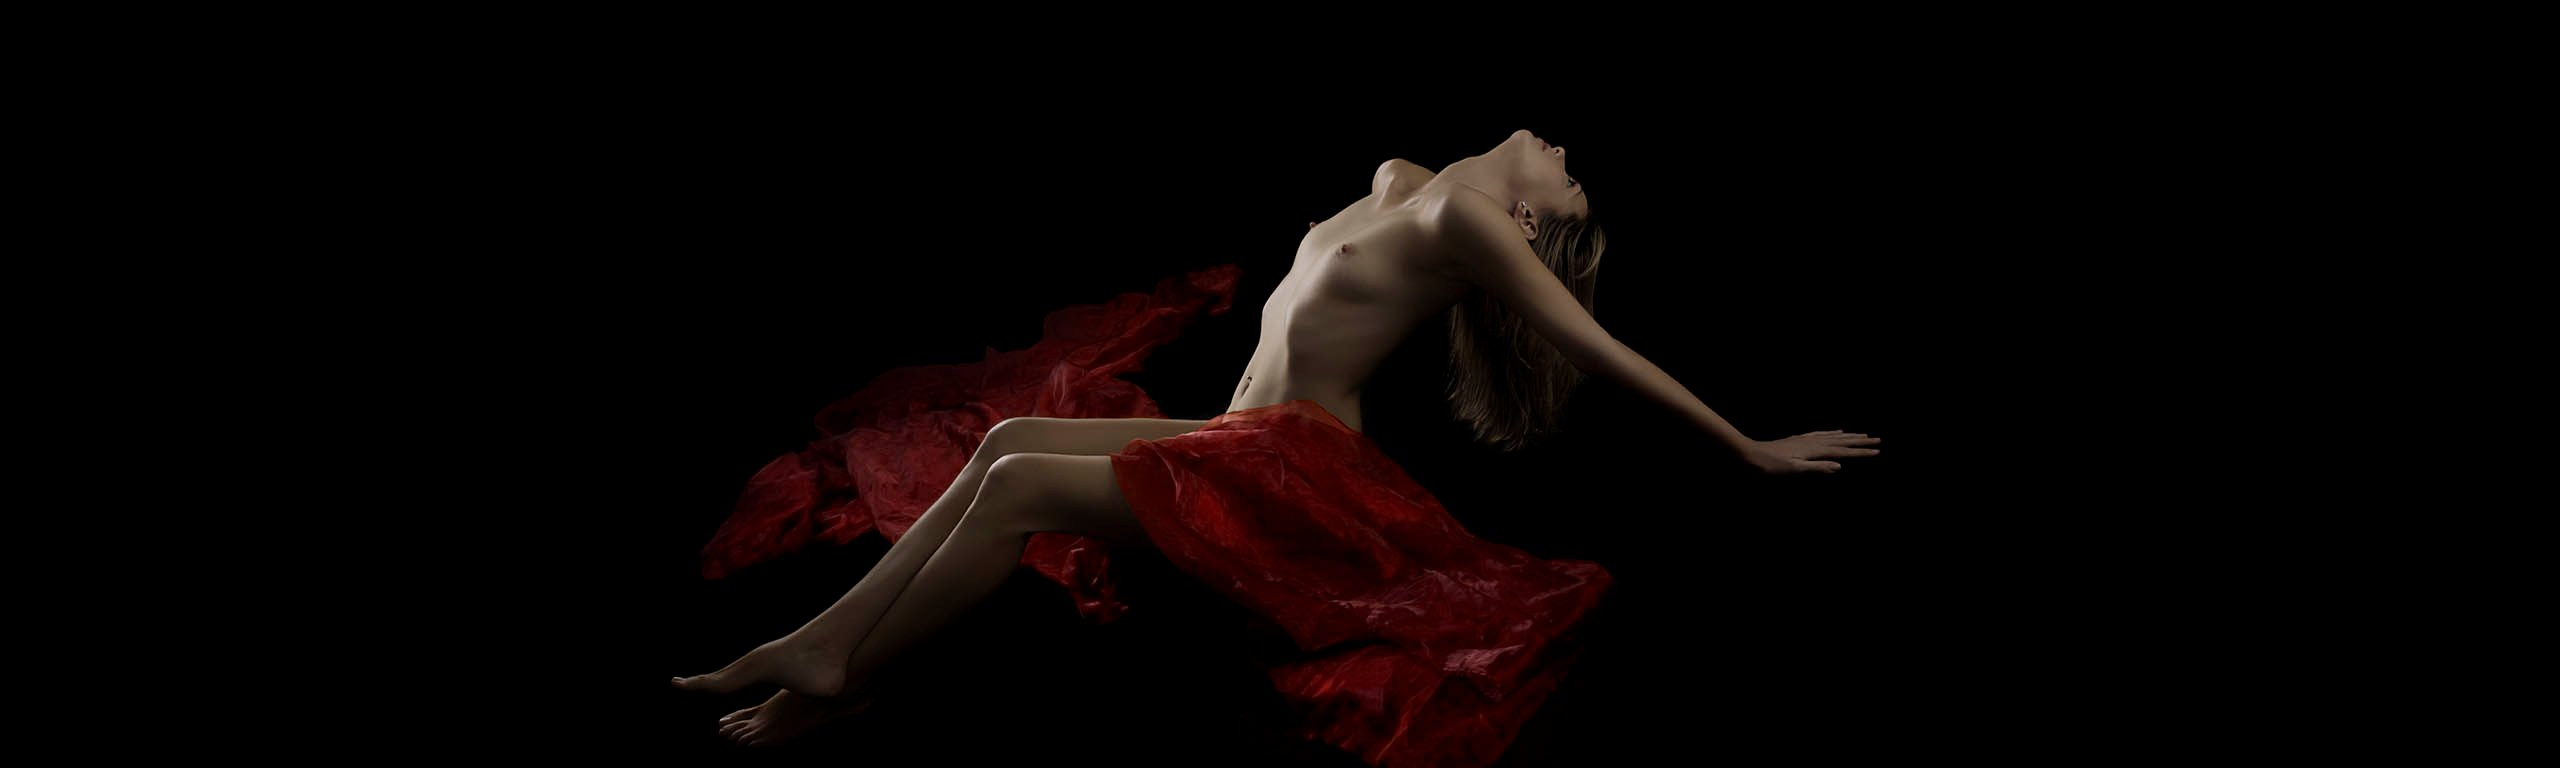 Nude woman draped in red fabric